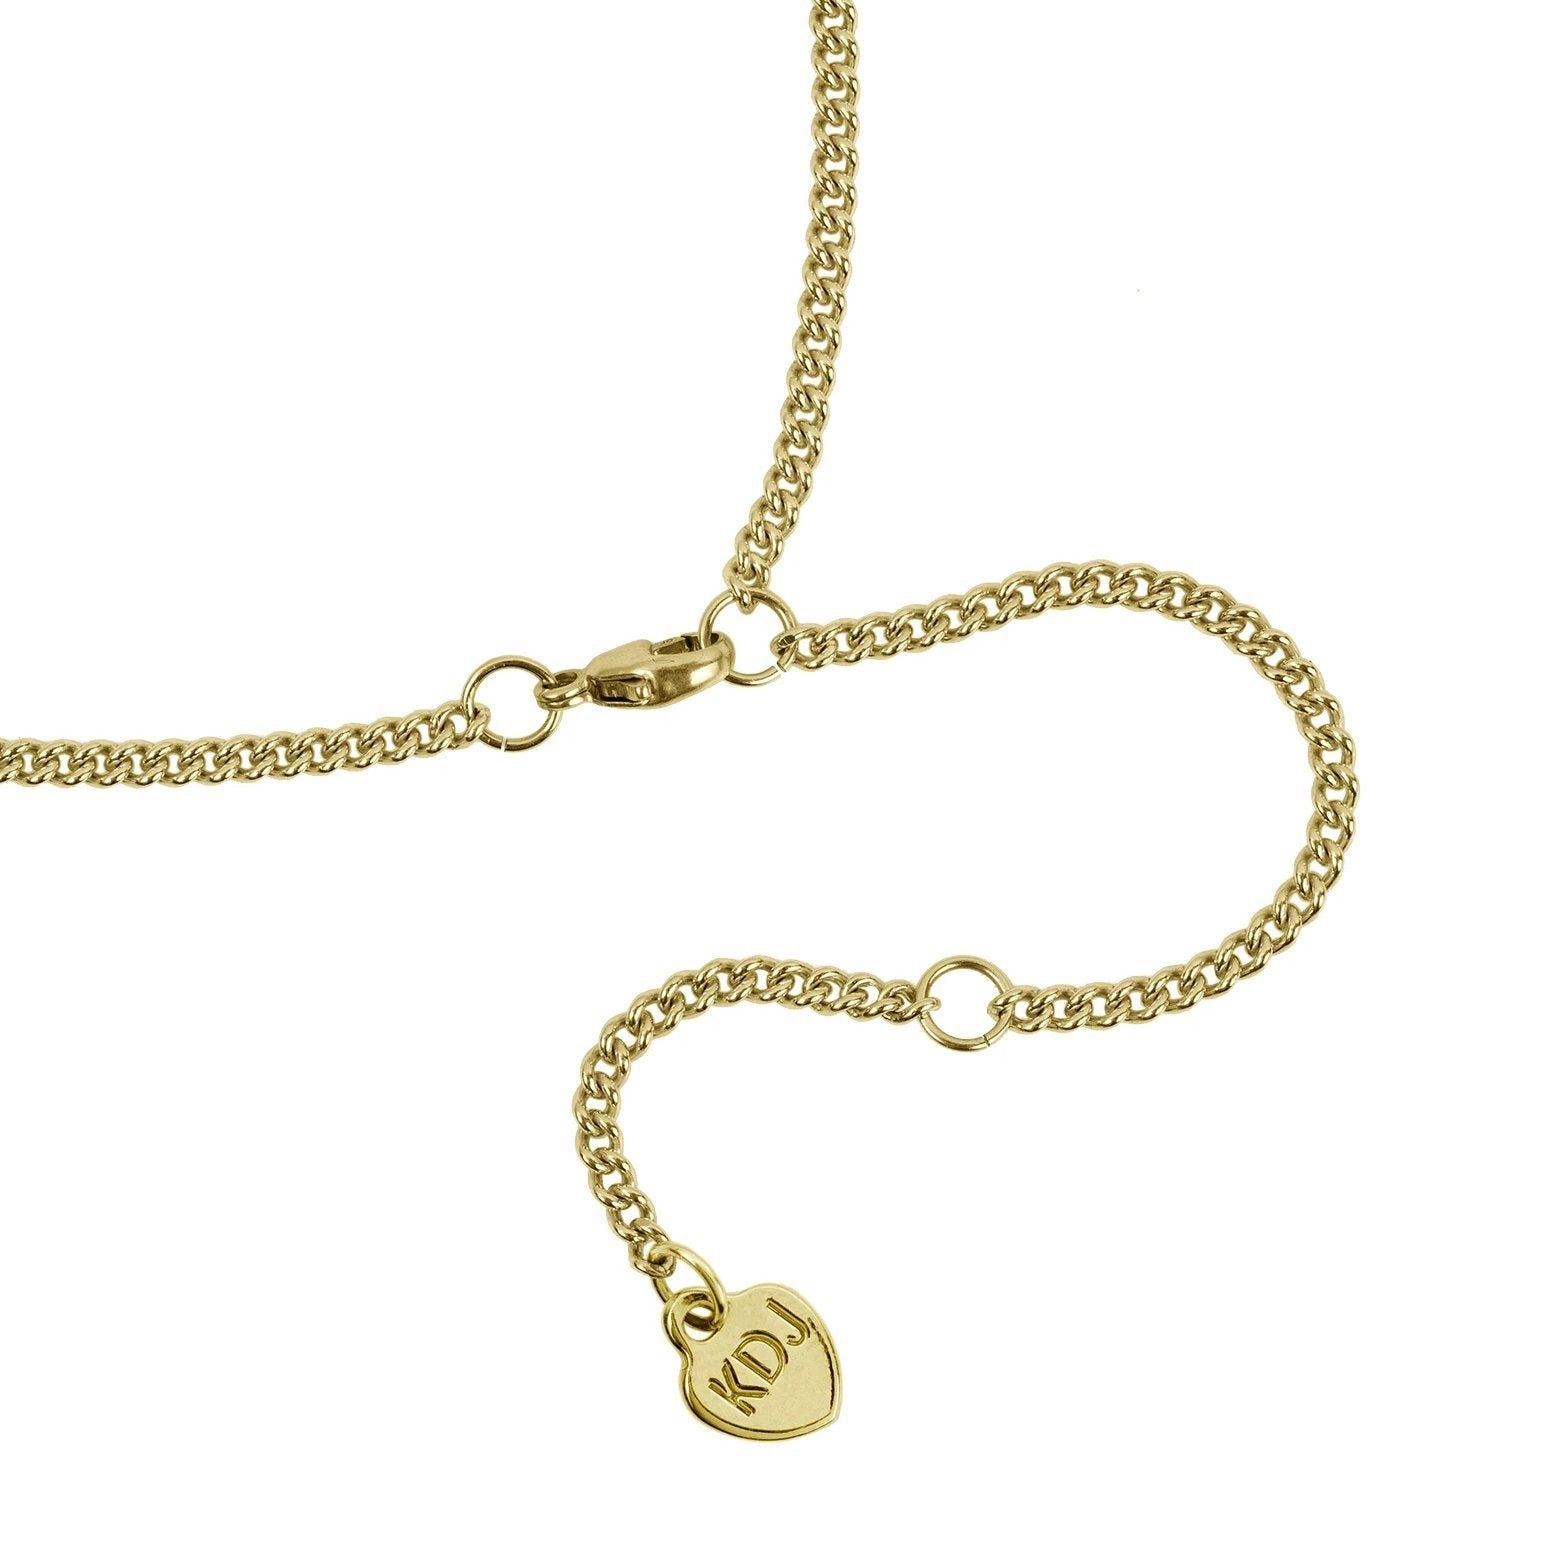 Up close image of the gold Love Lock Necklace clasp with initials KDJ.